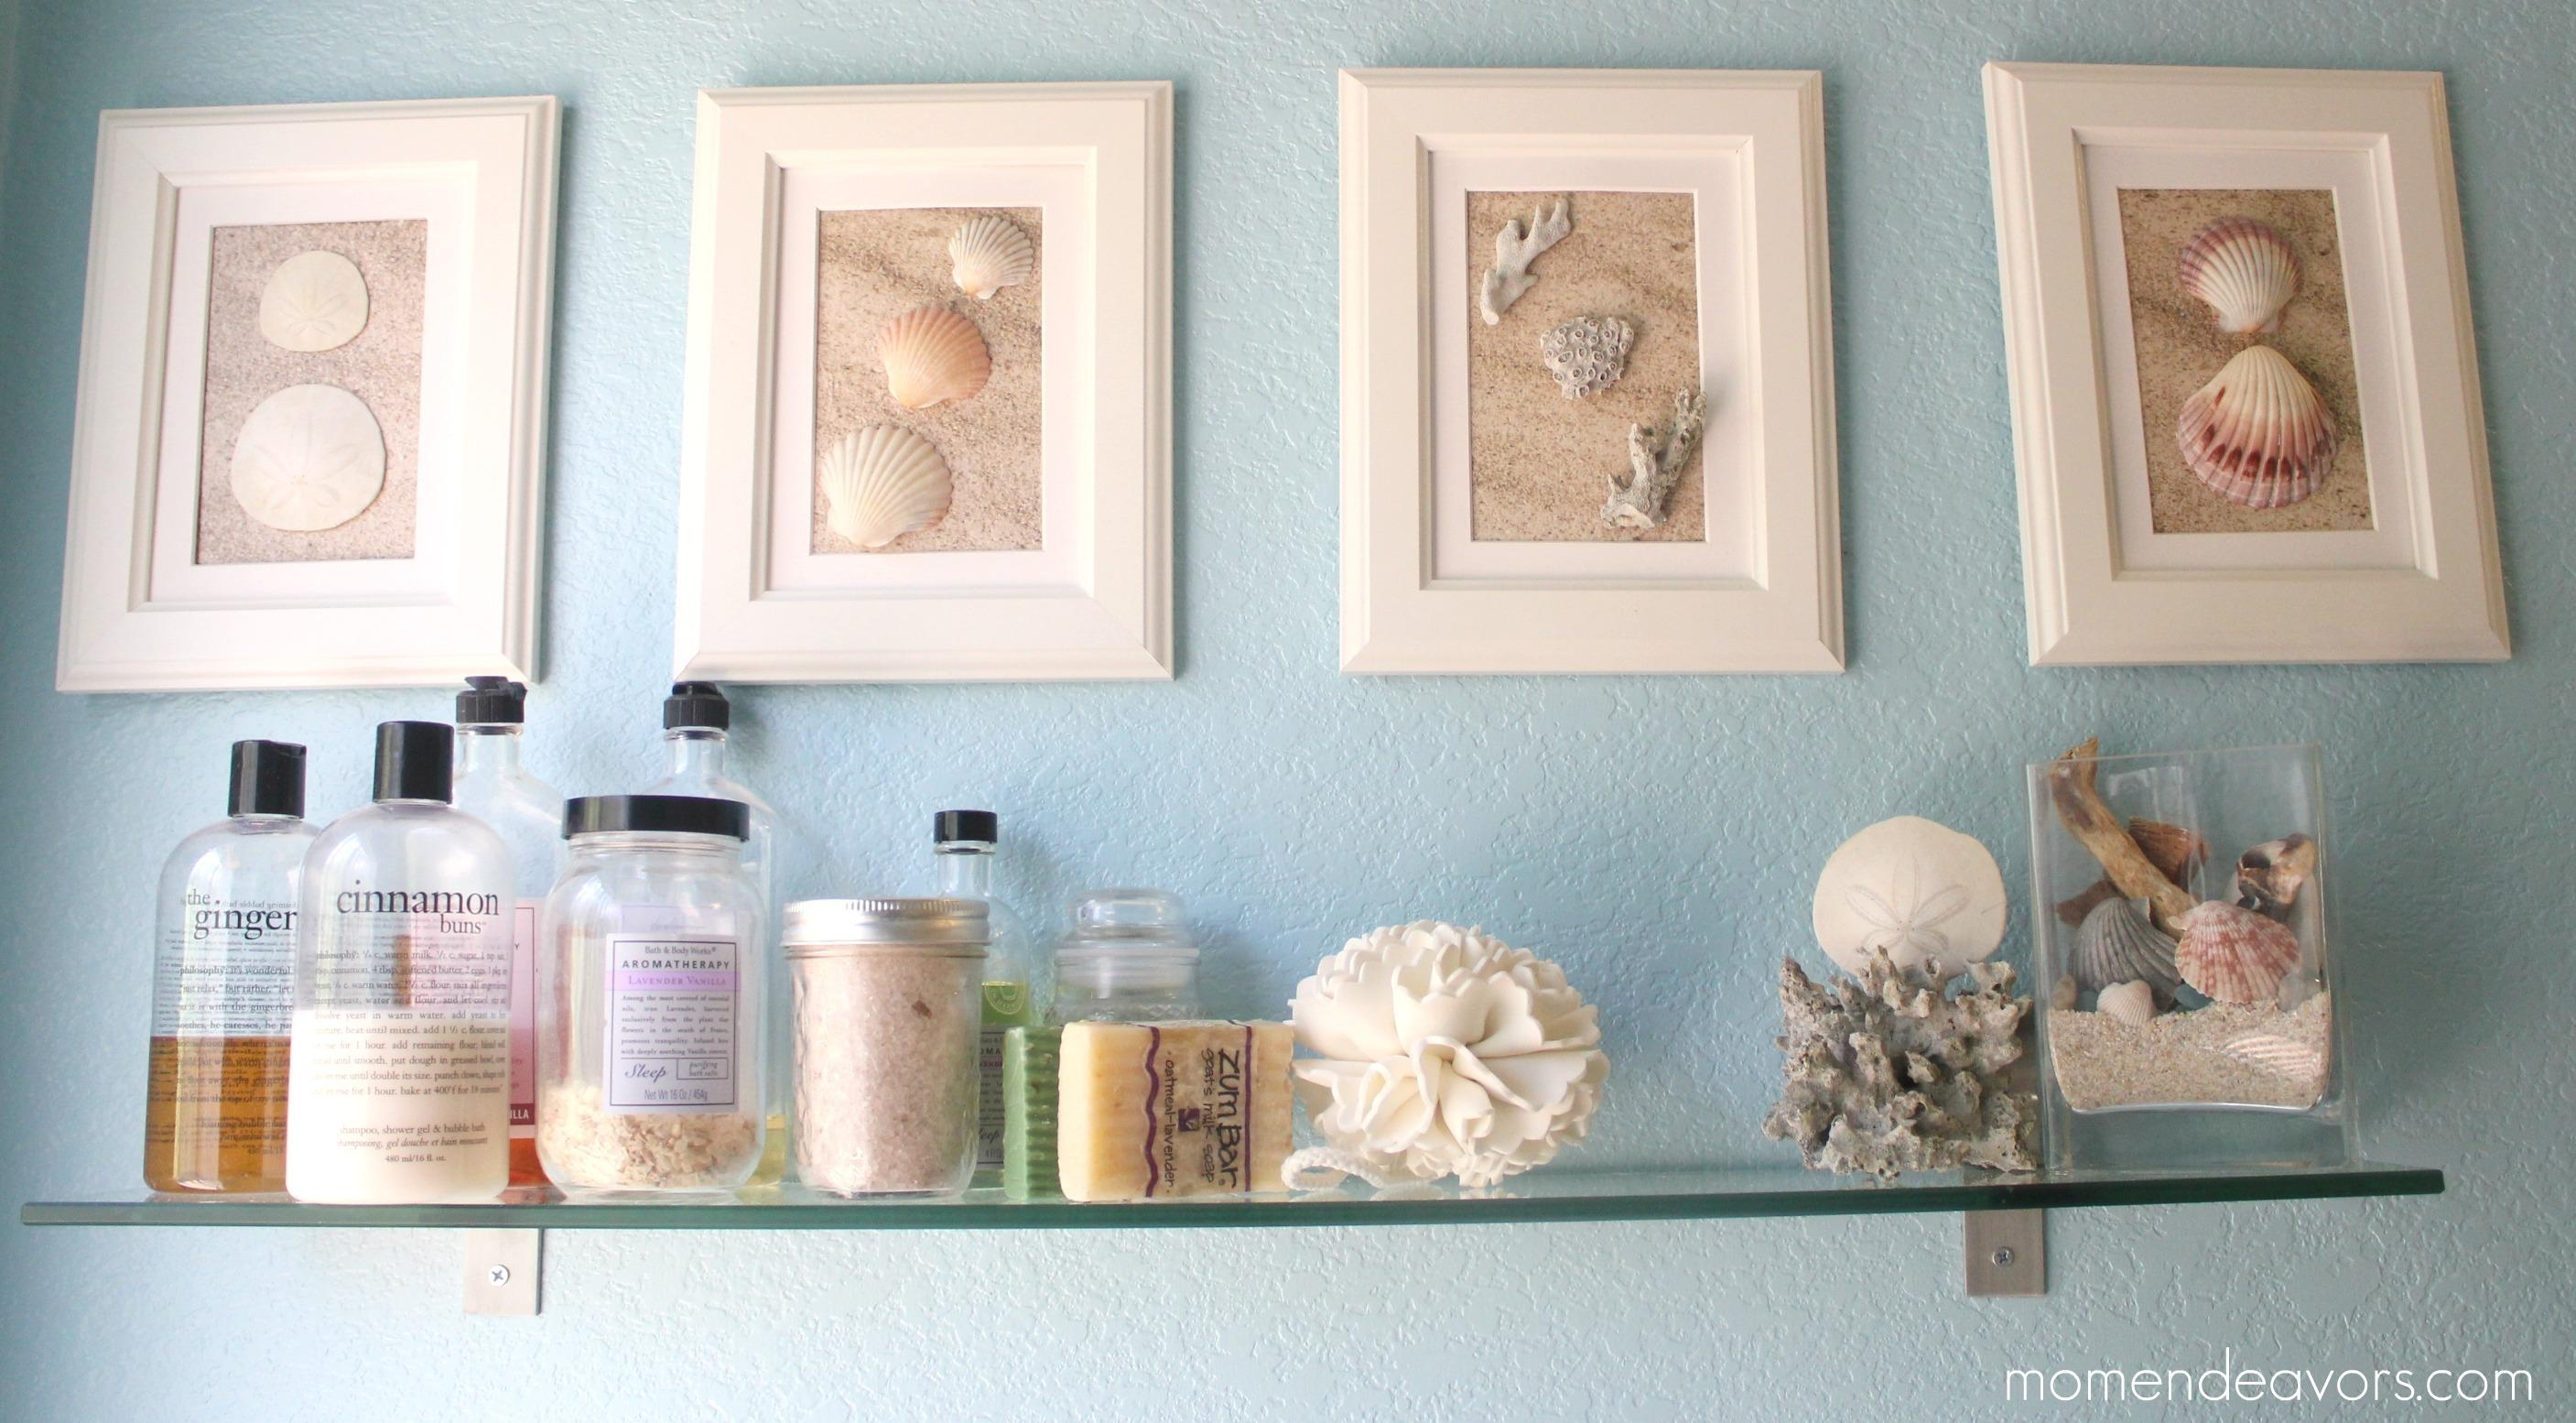 Shell Bathroom Wall Decor Diy, Have You Made Anything With Shells Pertaining To Capiz Shell Wall Art (View 19 of 20)